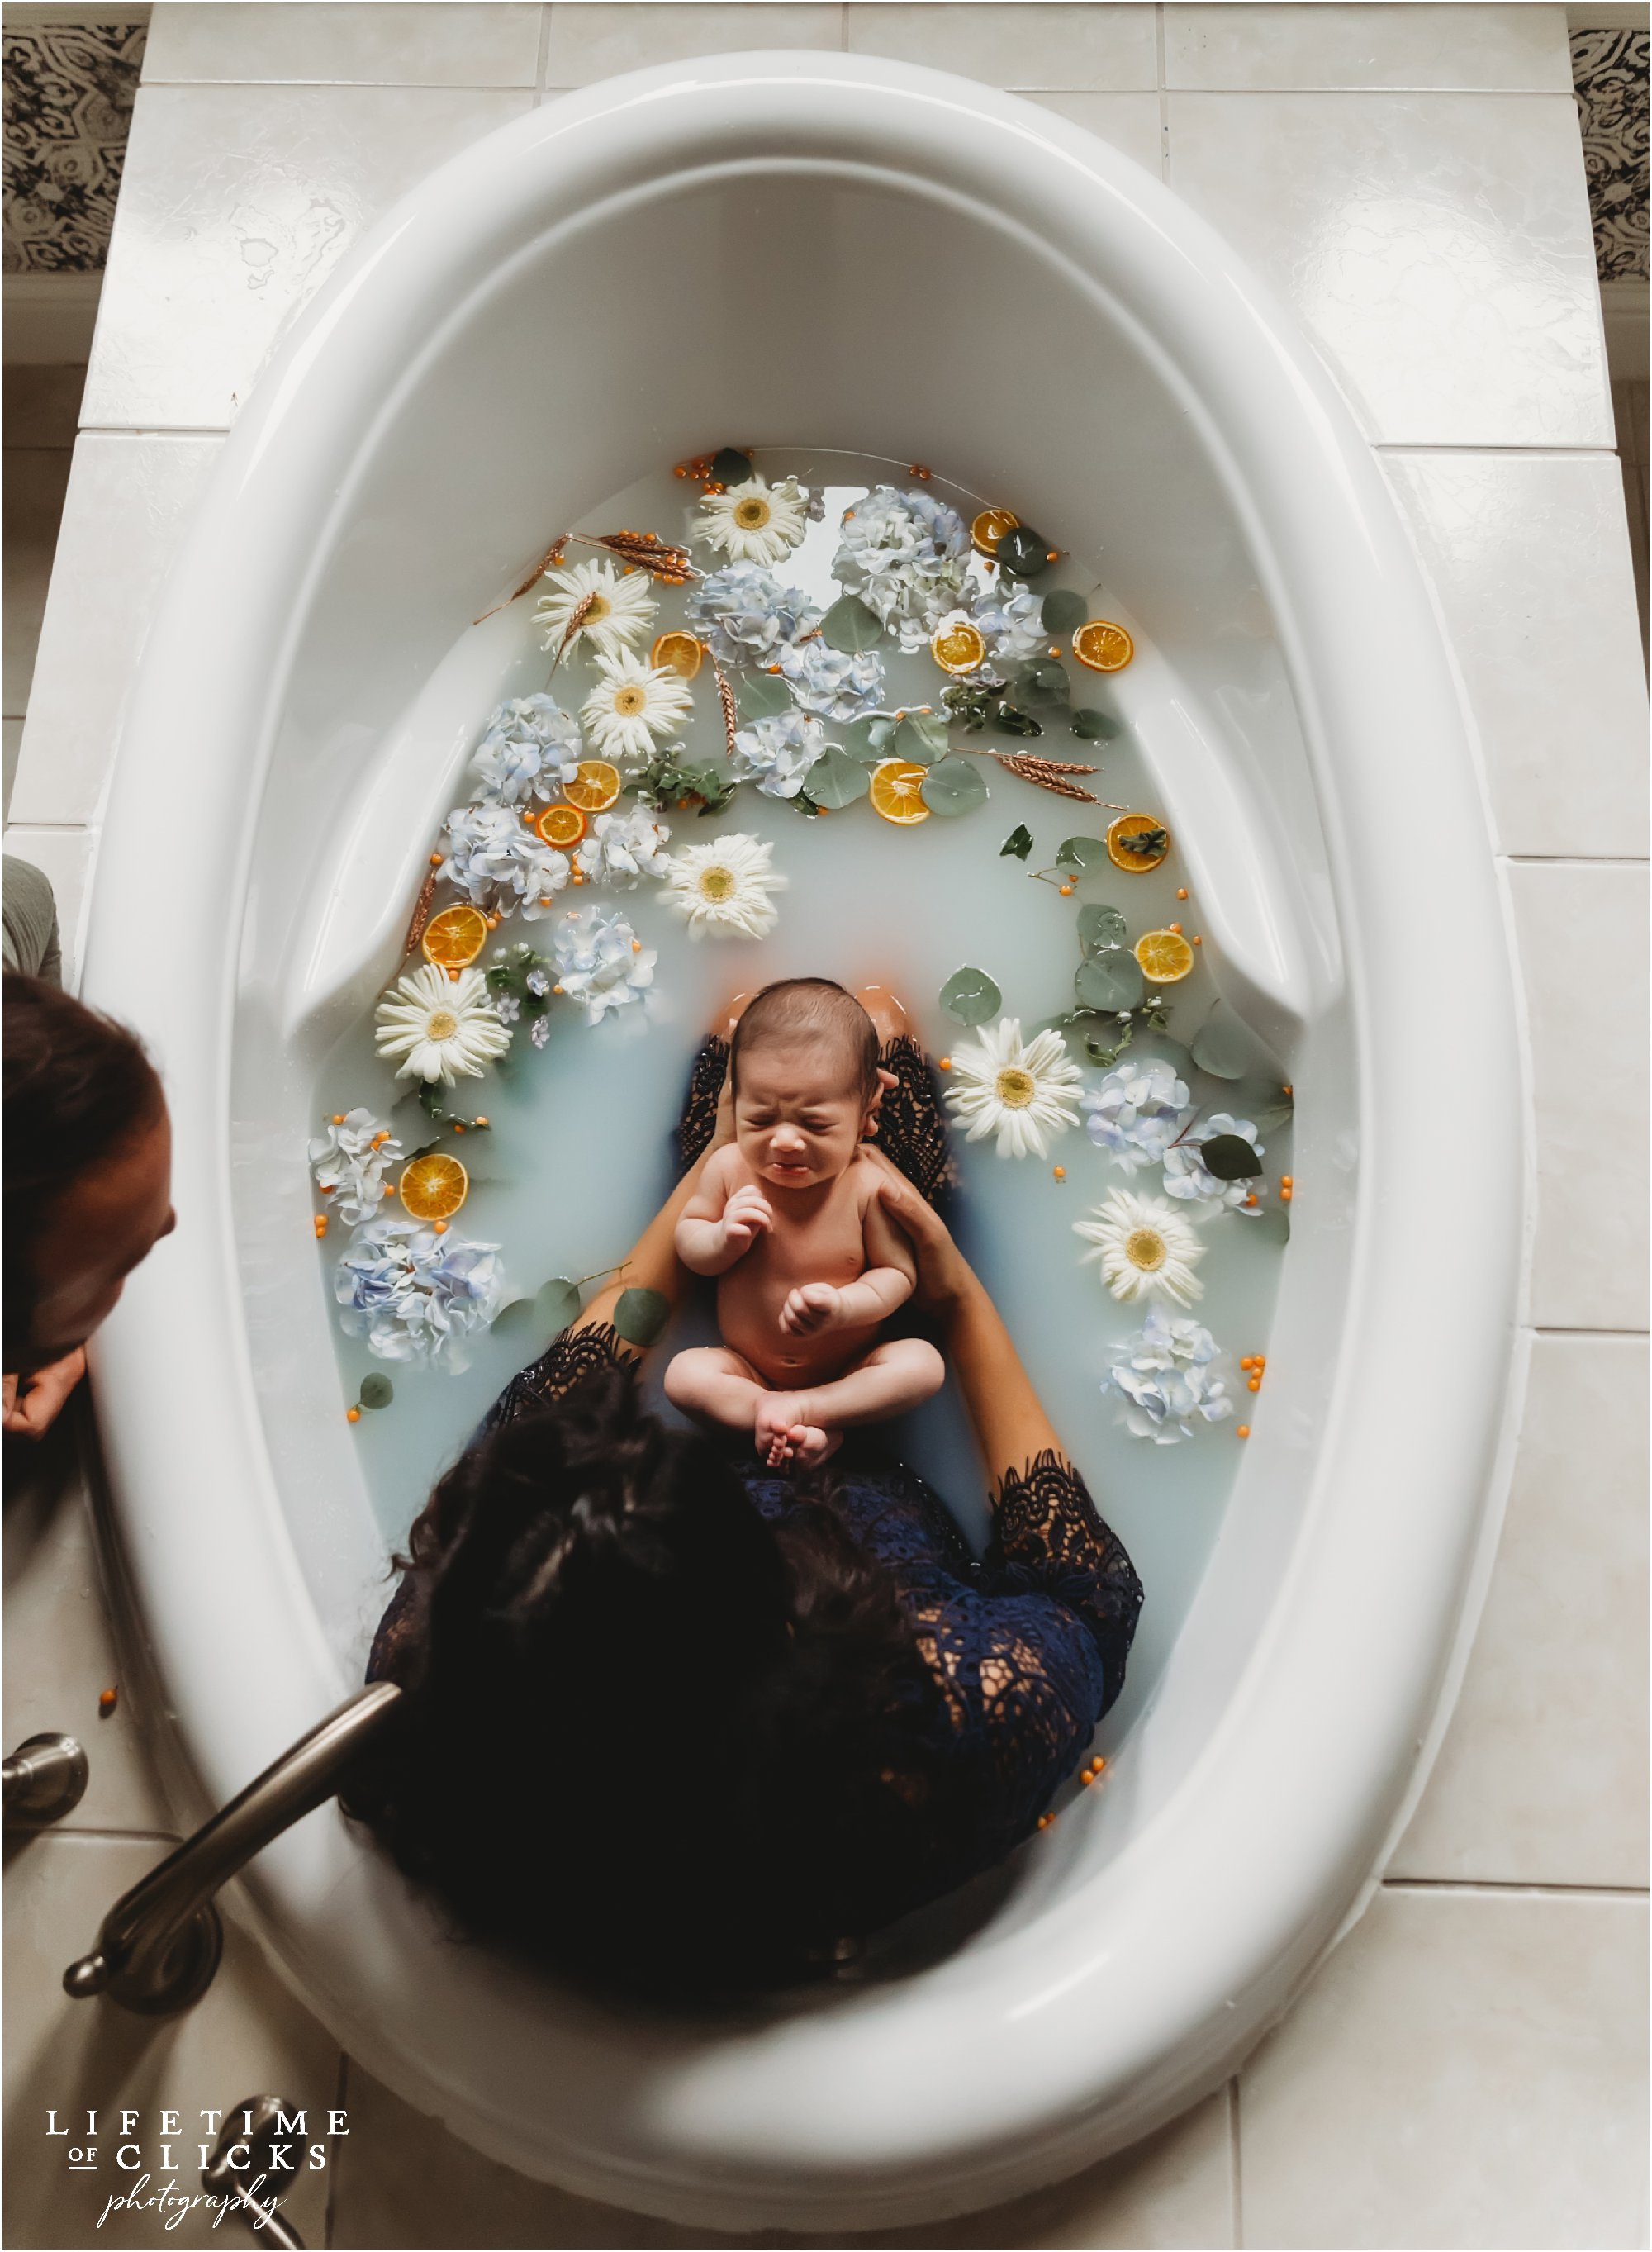 Newborn boy in milk bath with mother | Photos by Lifetime of Clicks Photography